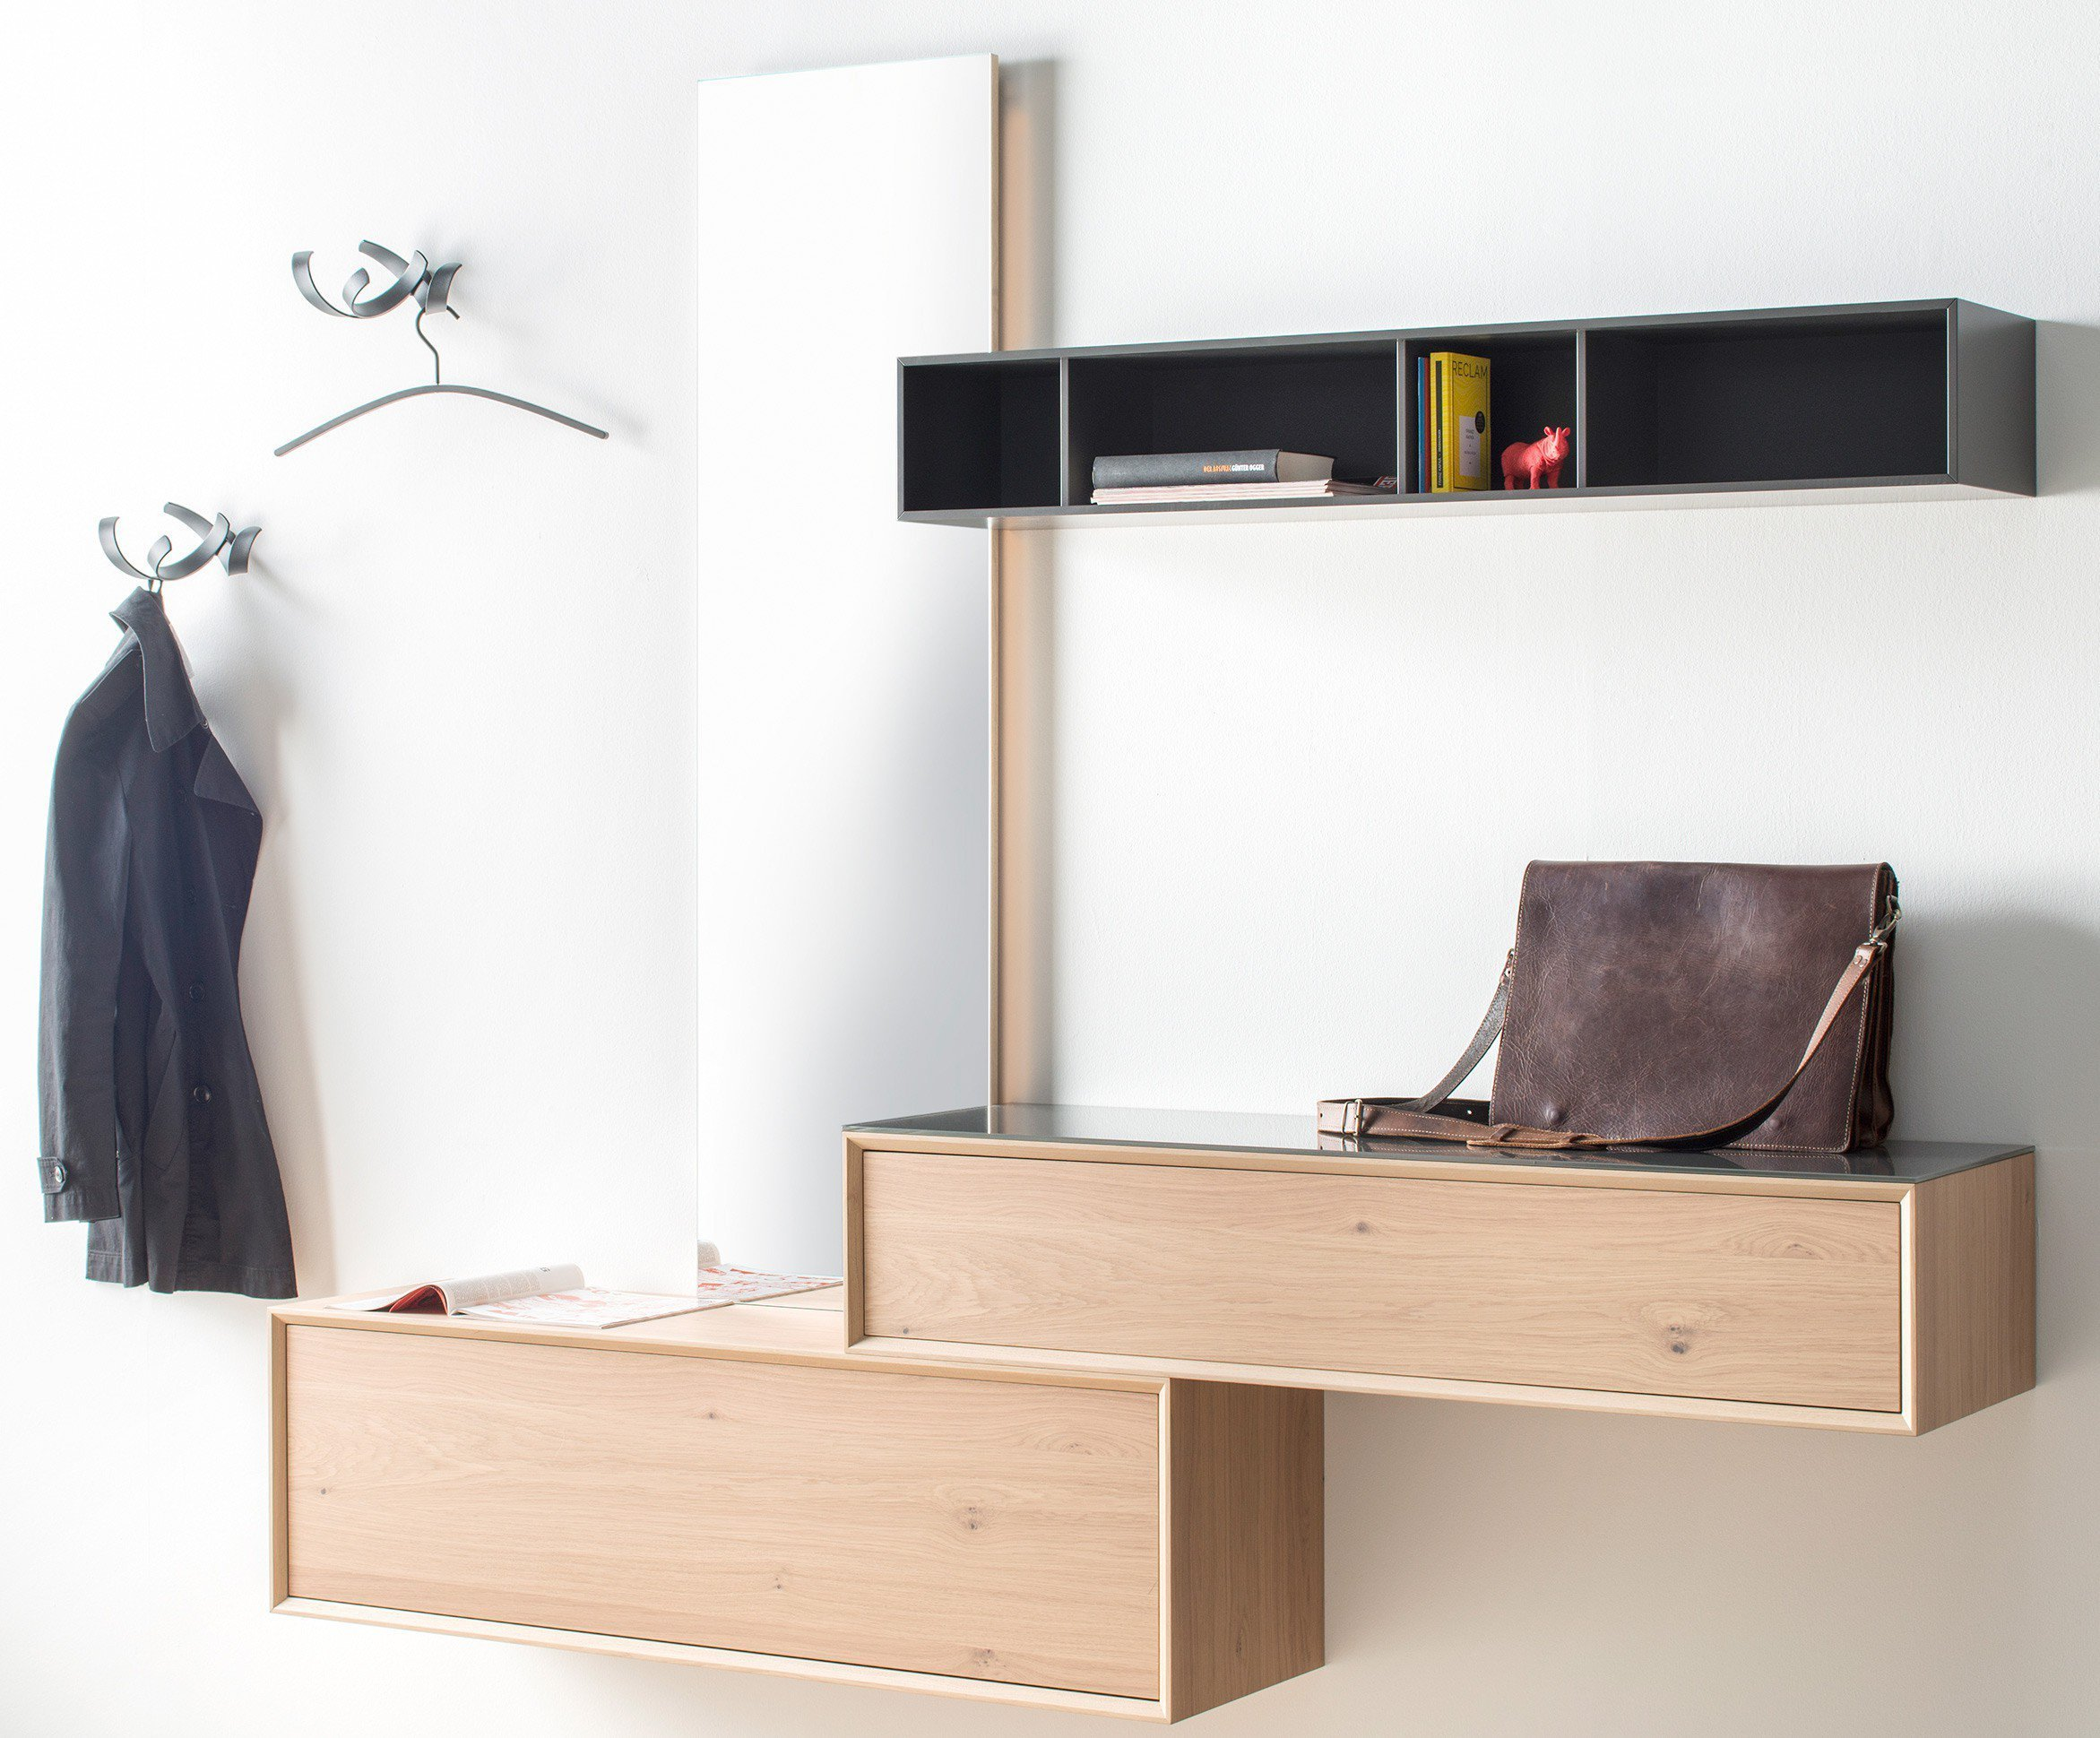 sudbrock garderobe modo 19 eiche quarz m bel letz ihr online shop. Black Bedroom Furniture Sets. Home Design Ideas